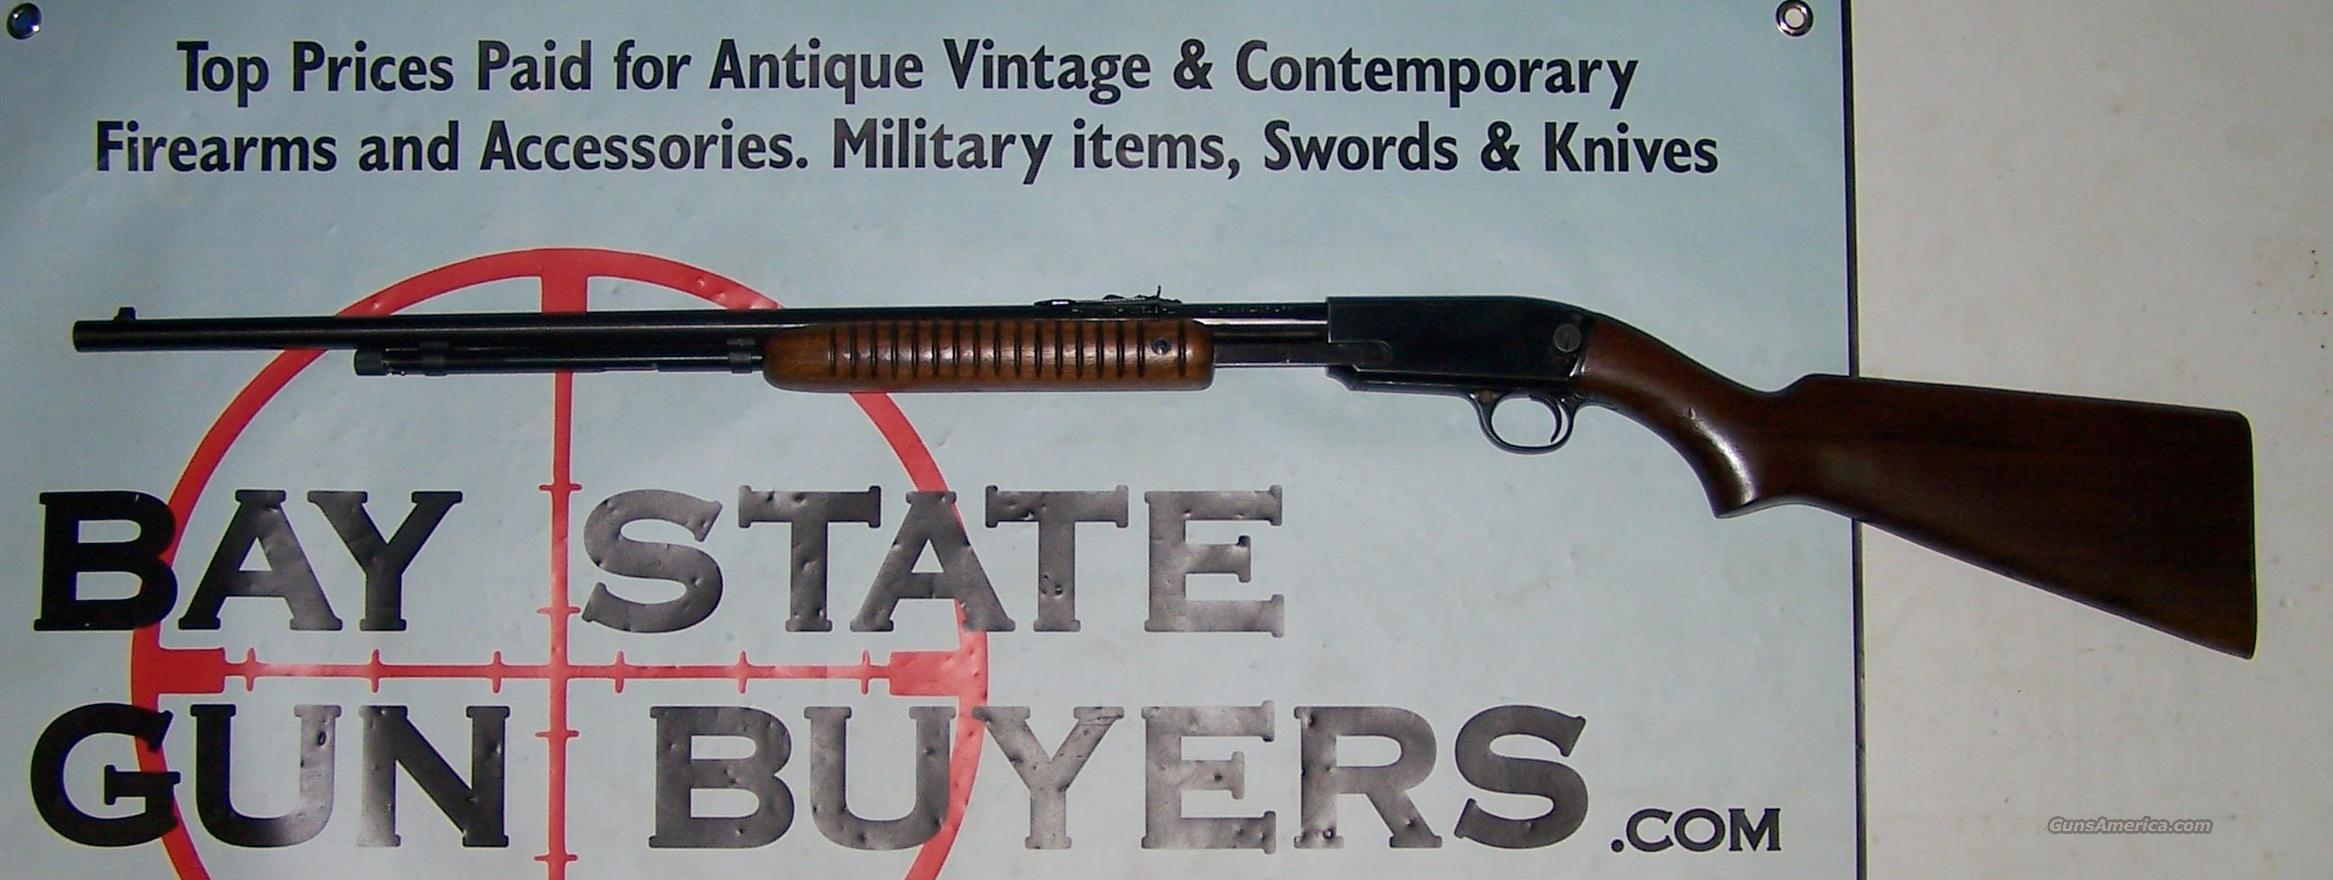 Winchester Model 61 Pump Action Rifle .22 S, L or LR (1947 Manf. Date)  Guns > Rifles > Winchester Rifles - Modern Pump